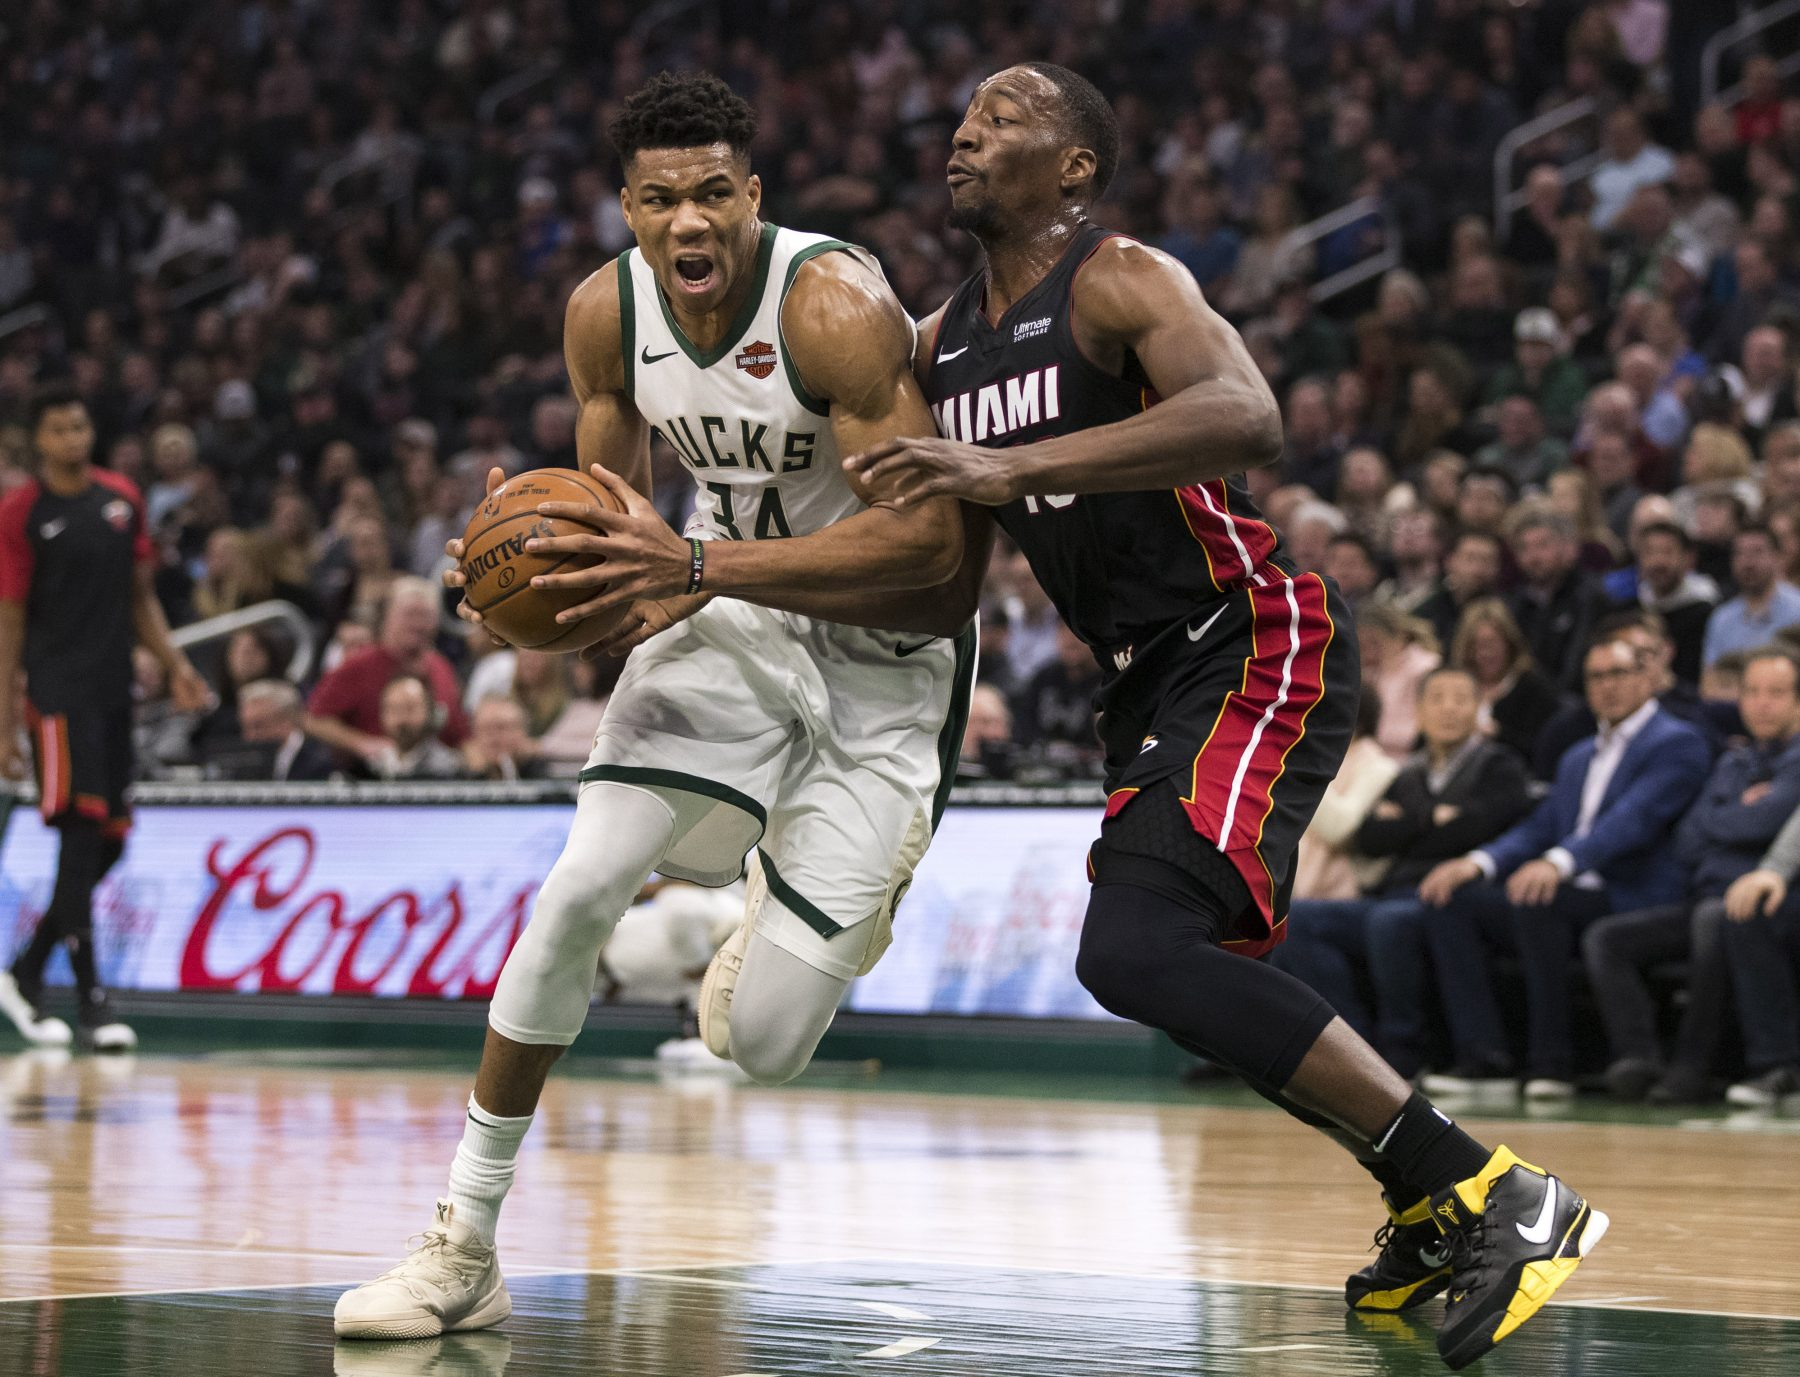 NBA Playoffs 2019: Milwaukee Bucks vs. Boston Celtics Game 1 live stream